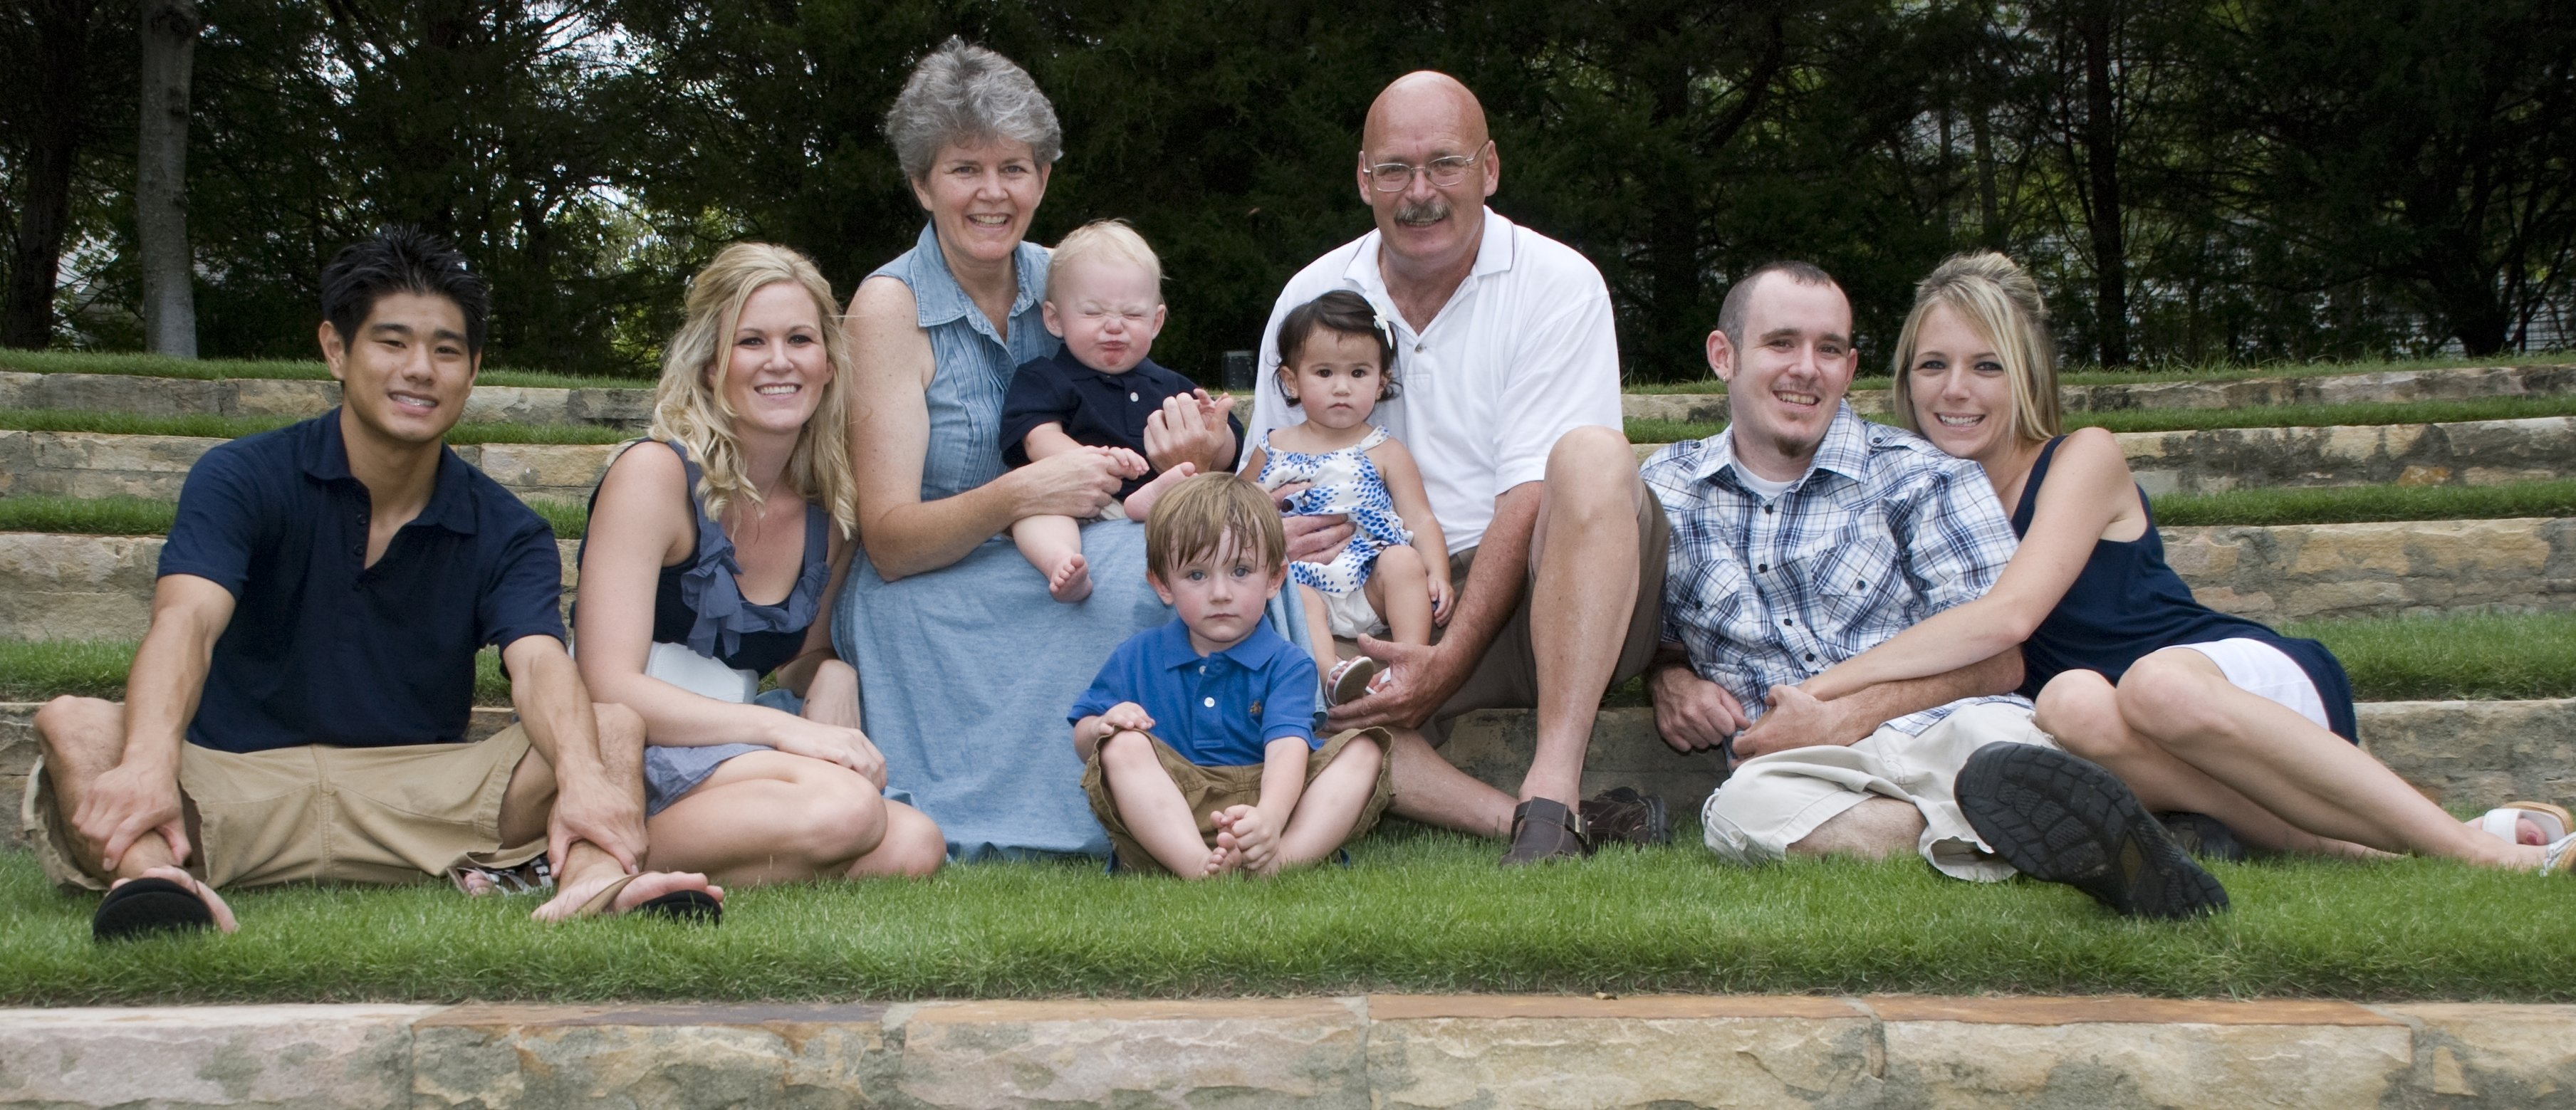 large family photo shoot (tips & ideas)   the design, photo and